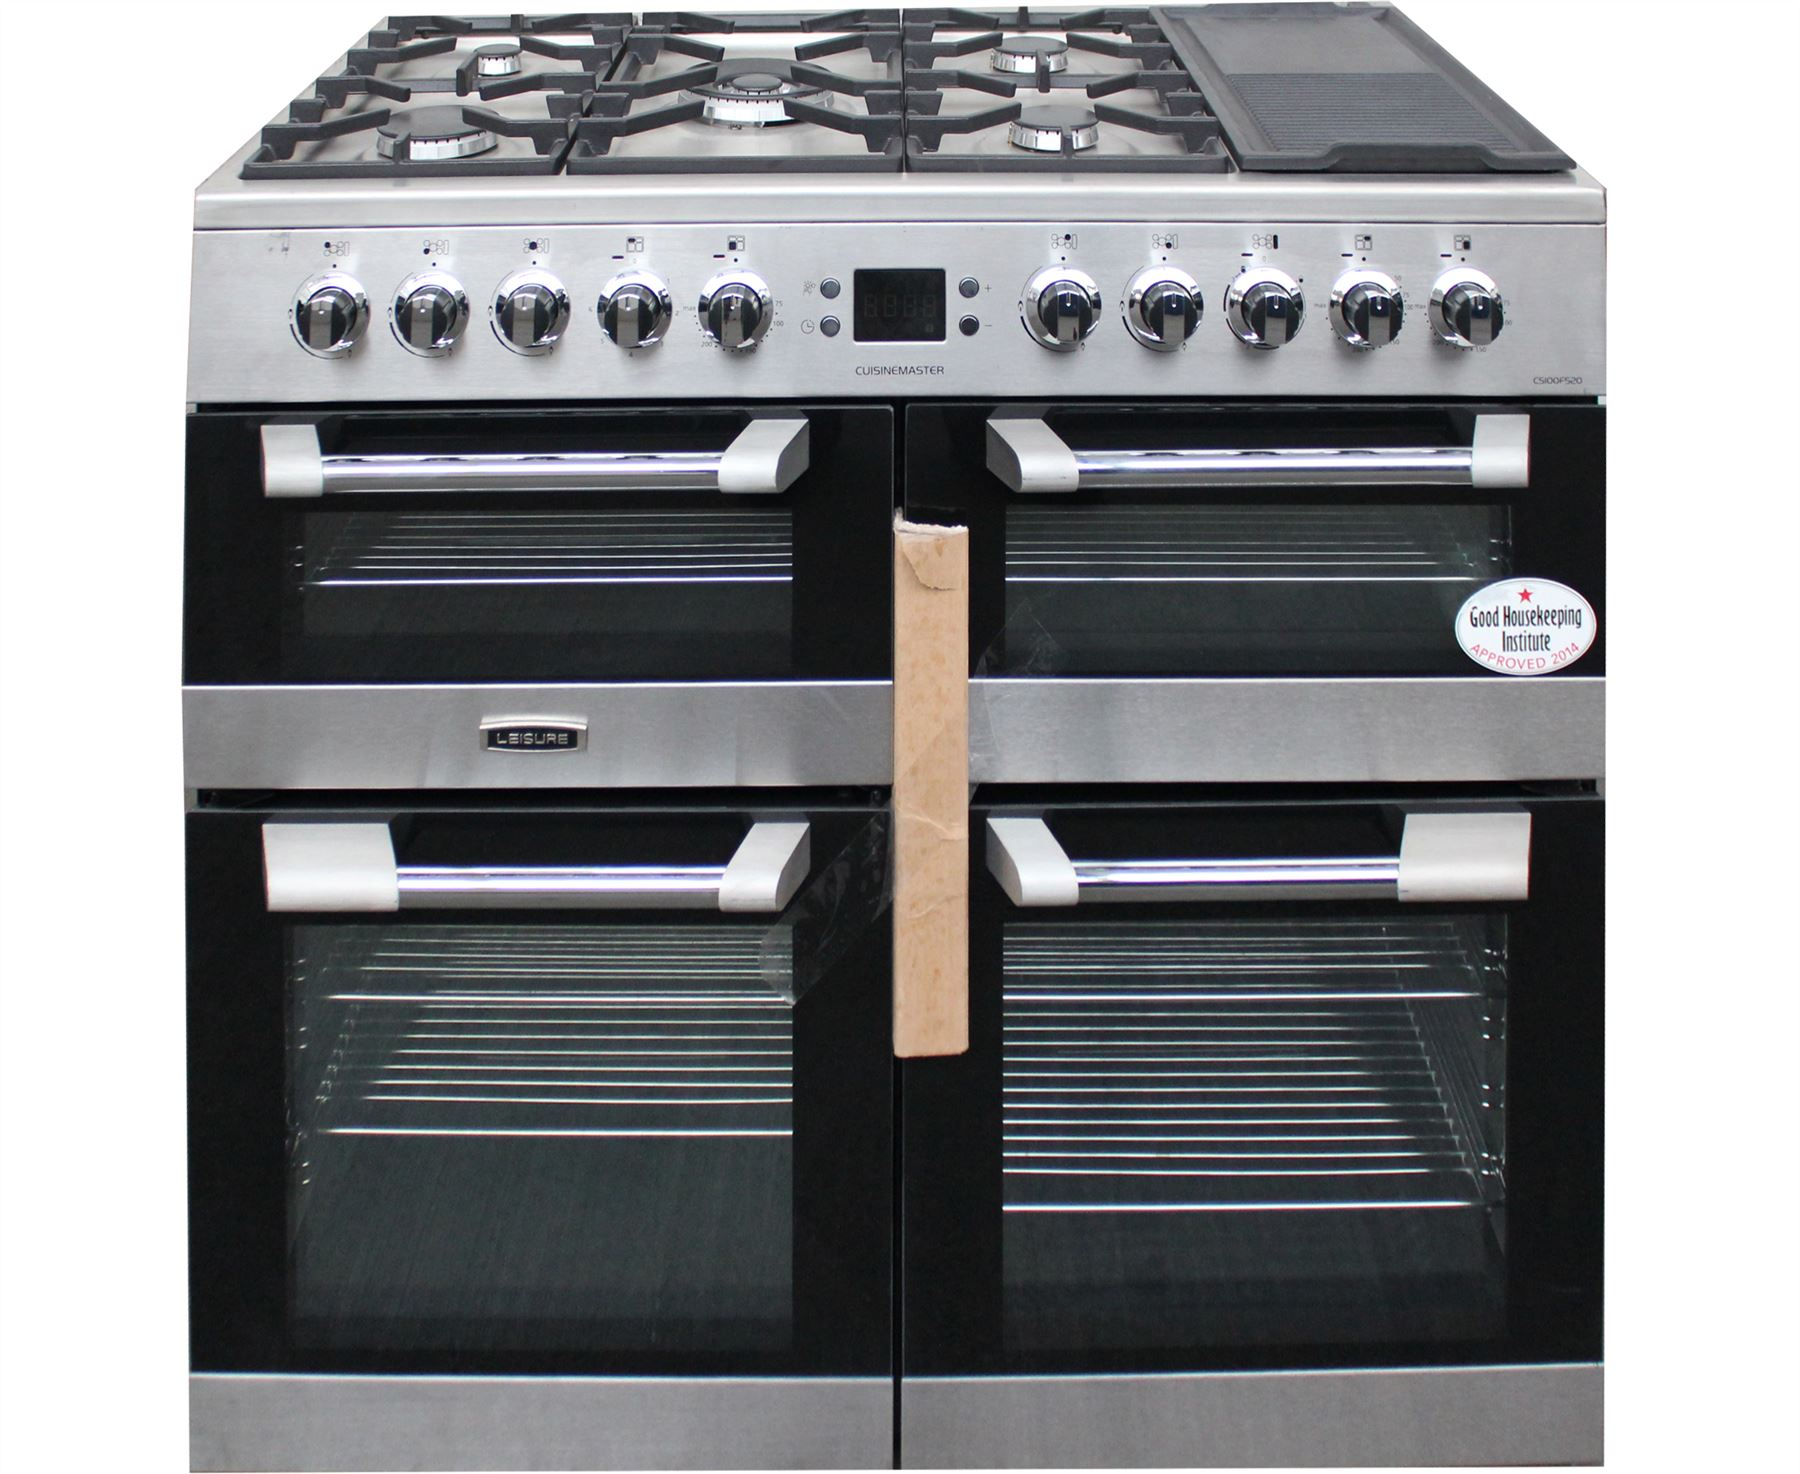 Leisure Cuisinemaster Cs100f520x Range Cooker Dual Fuel S